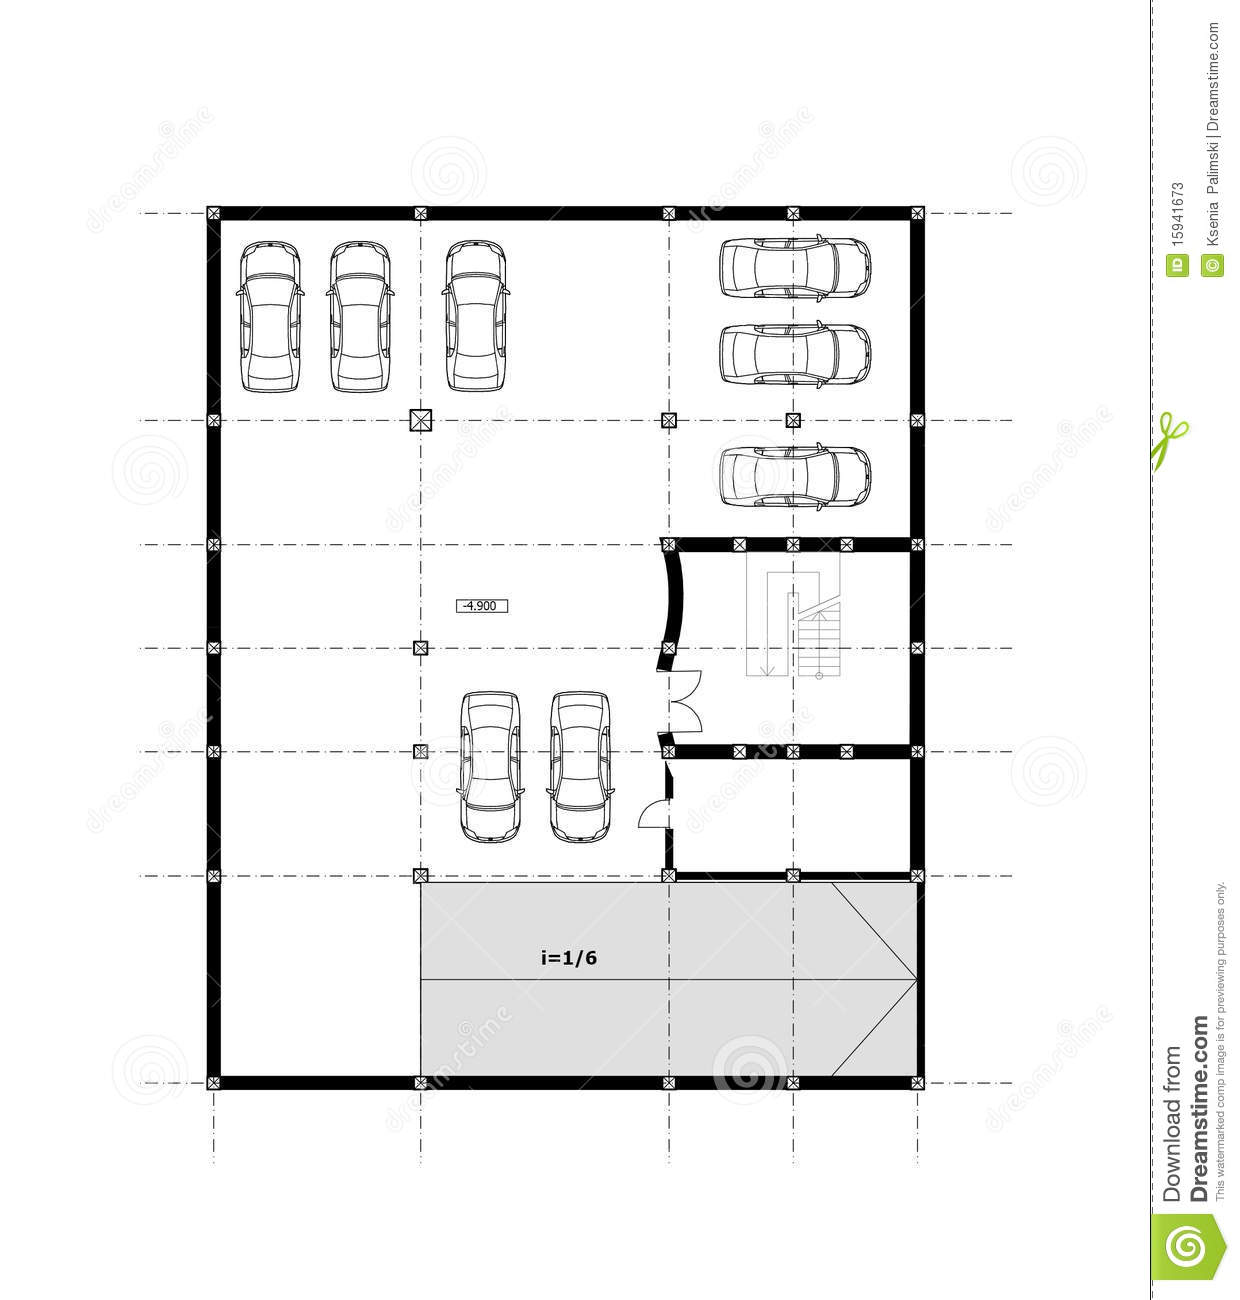 Cad Architectural Plan Drawing Stock Illustration